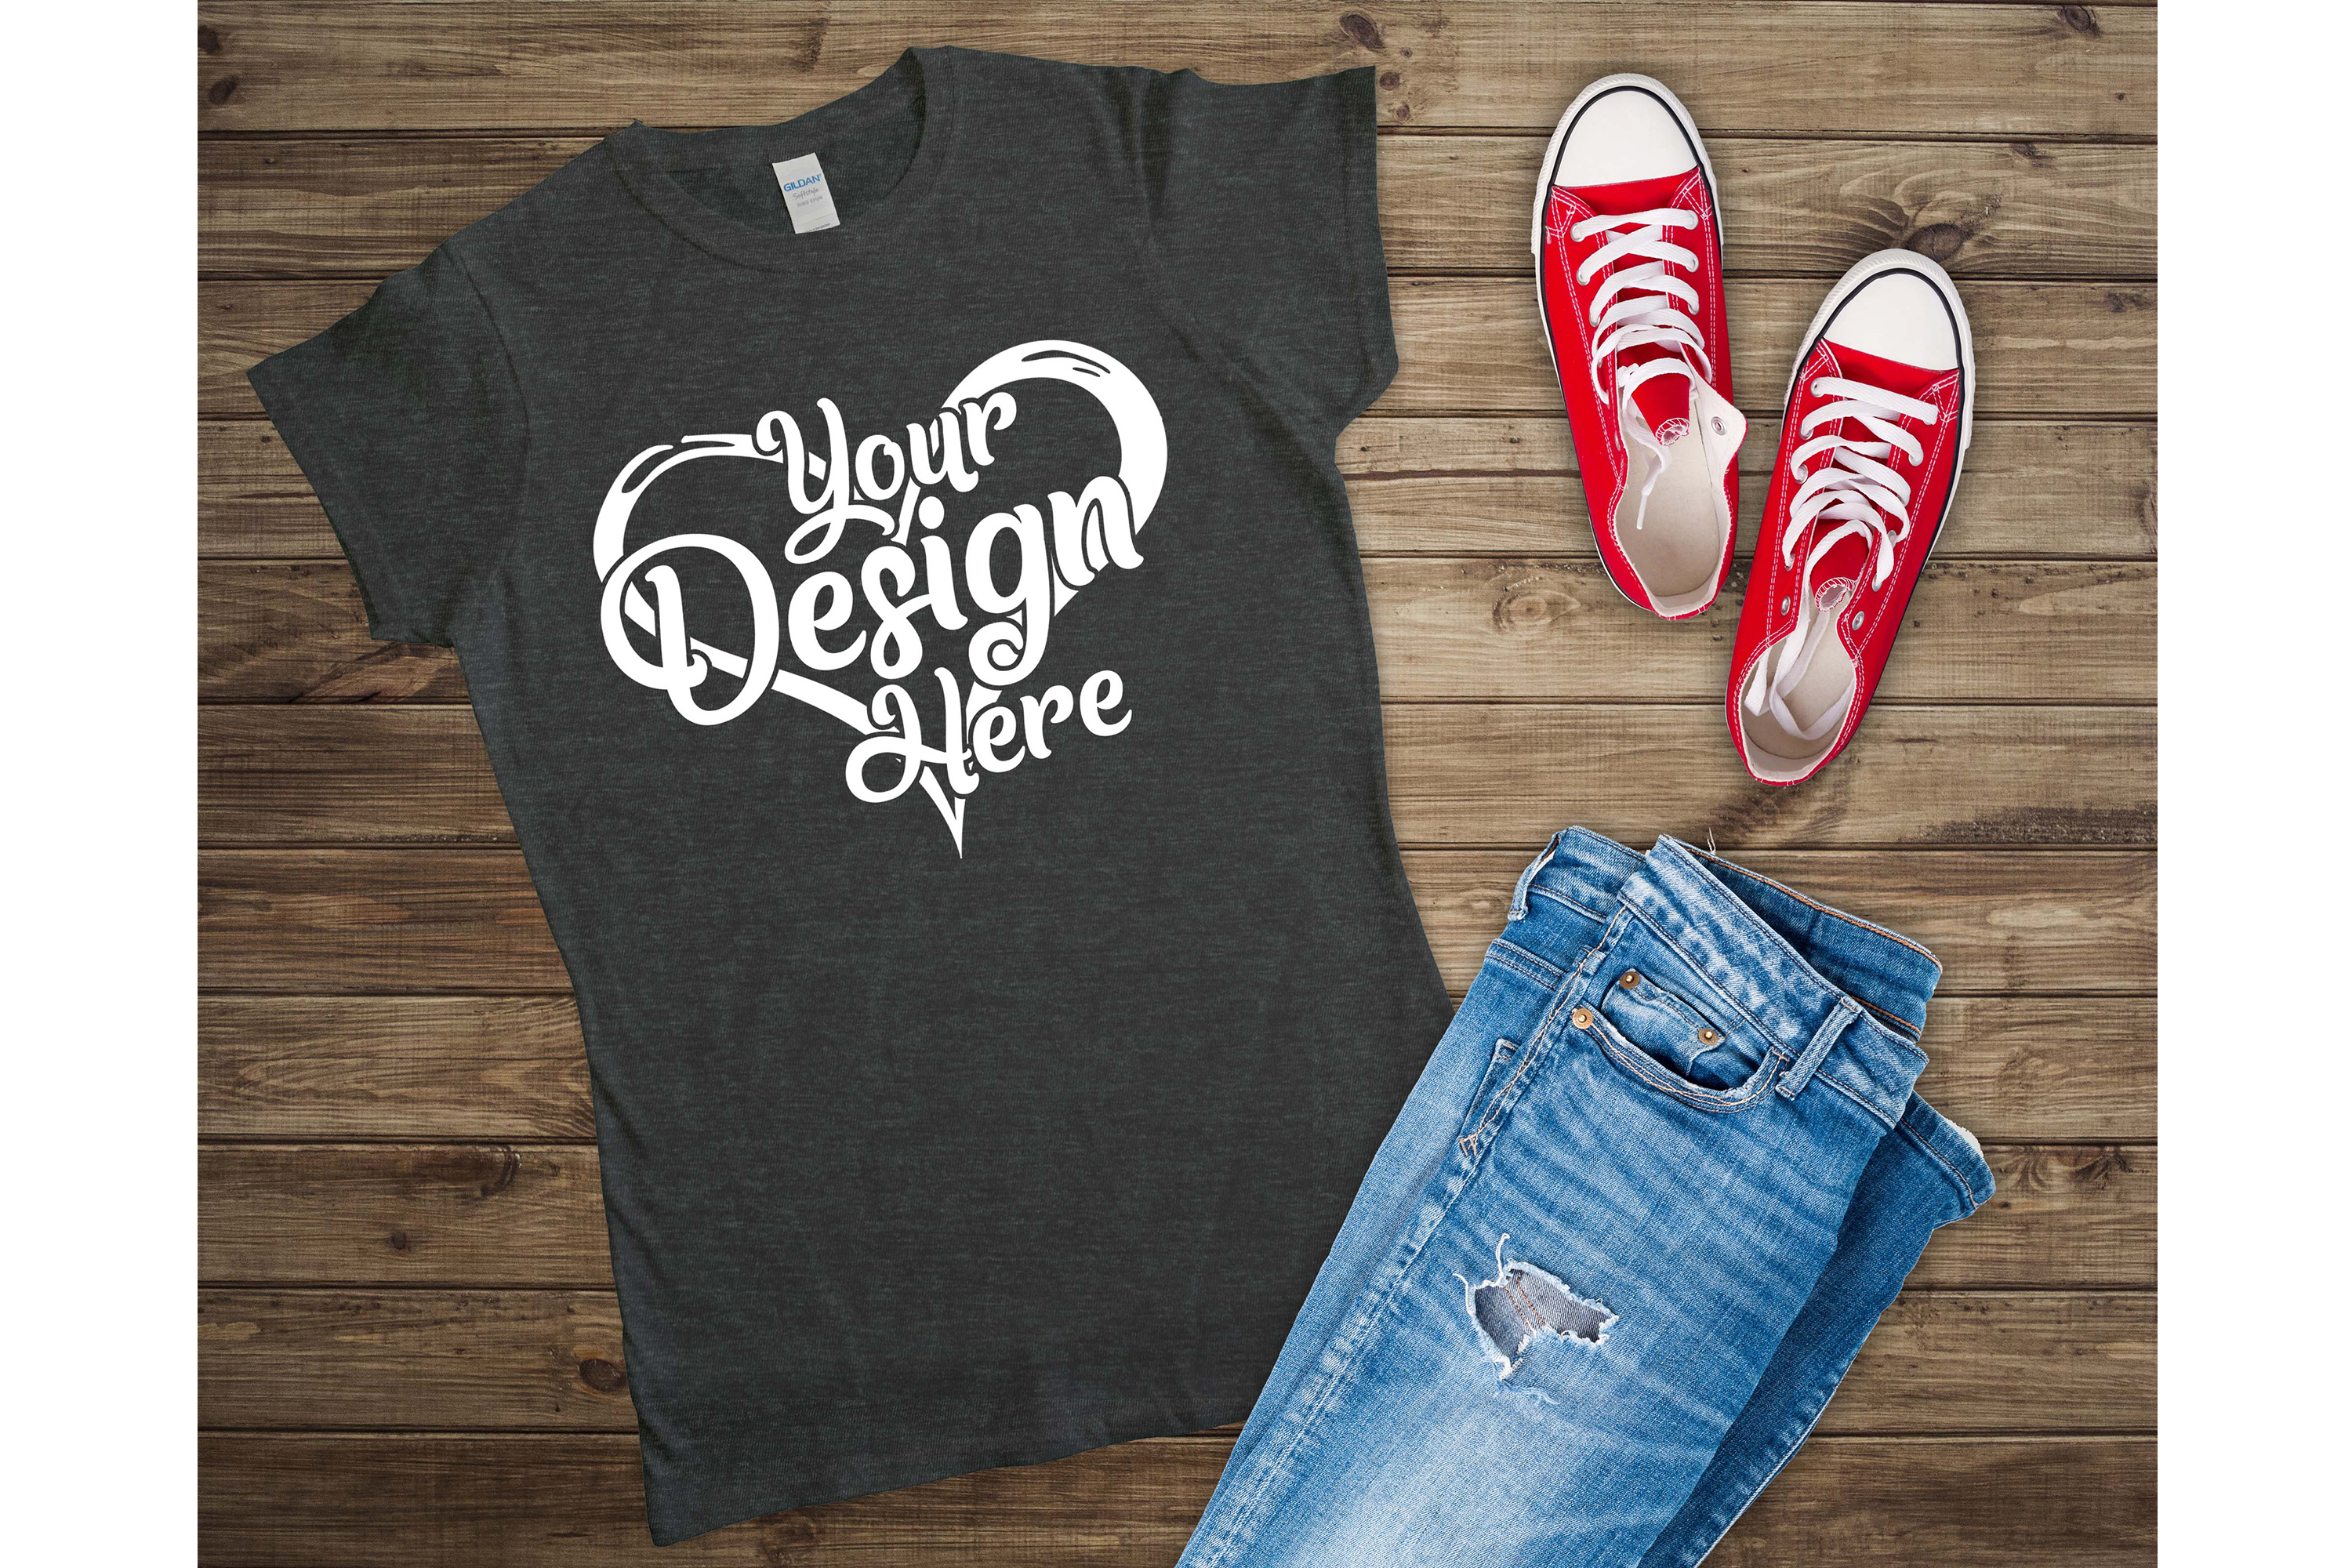 Gildan 64000L Ladies T-Shirt Mockup Bundle Flat Lay example image 5